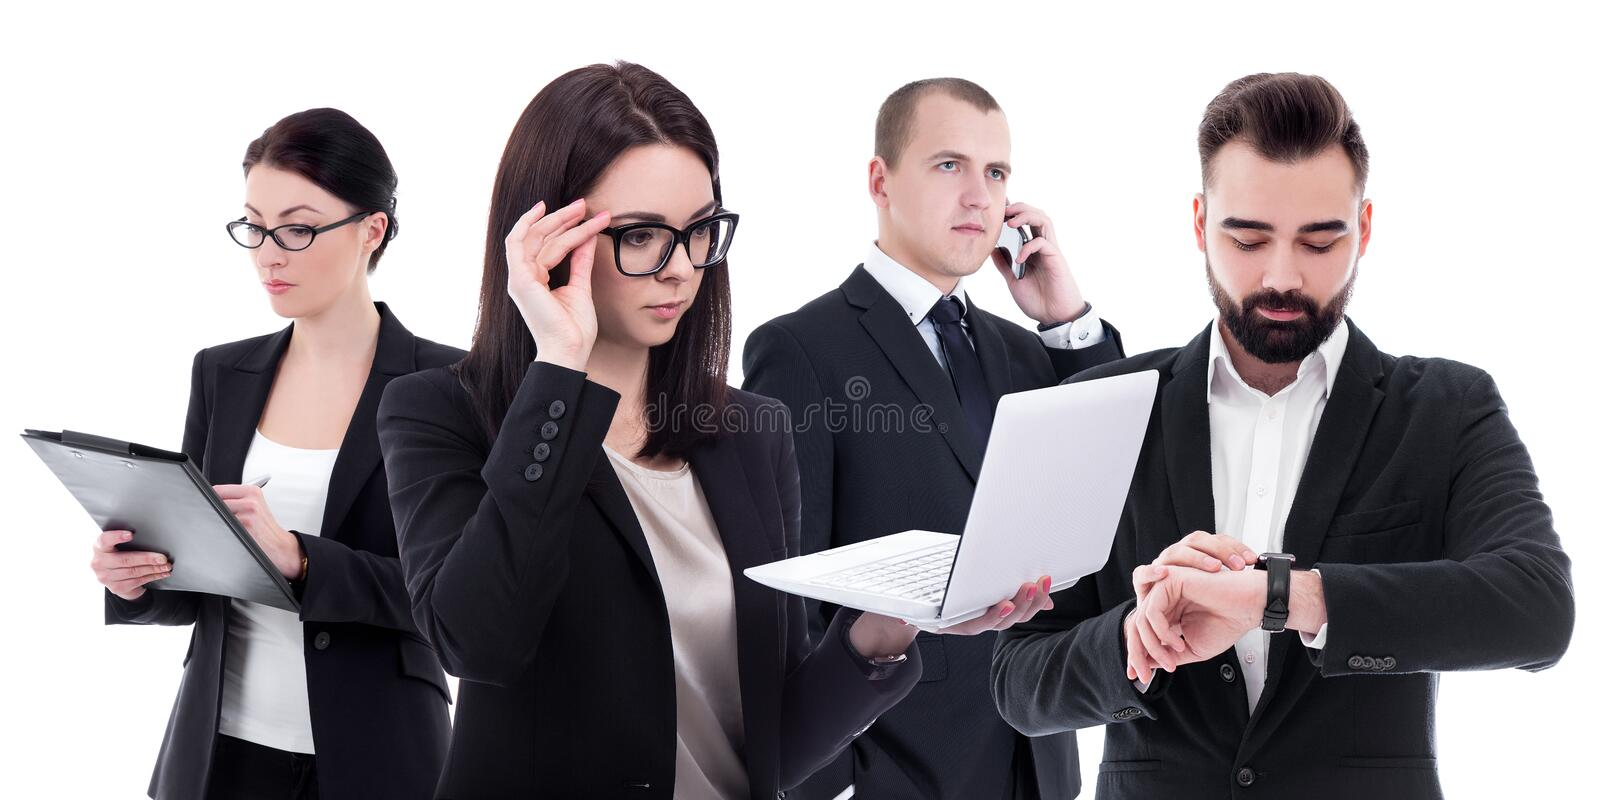 Team work concept - busy business people in business suits isolated on white stock photos